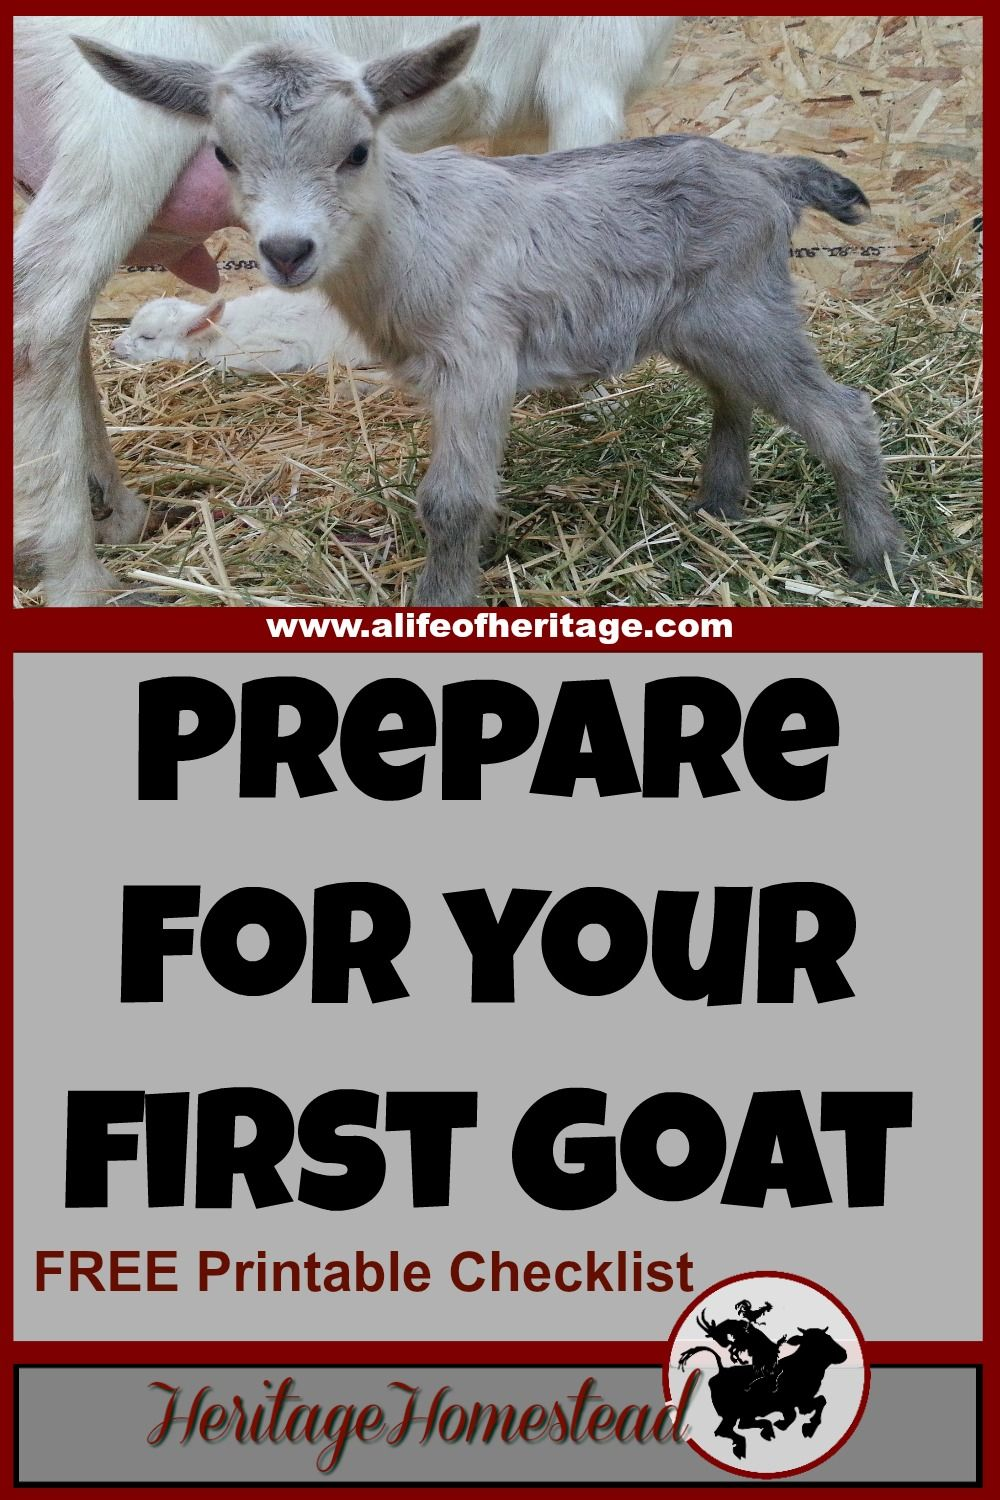 What You Need BEFORE Bringing Home Your First Goat